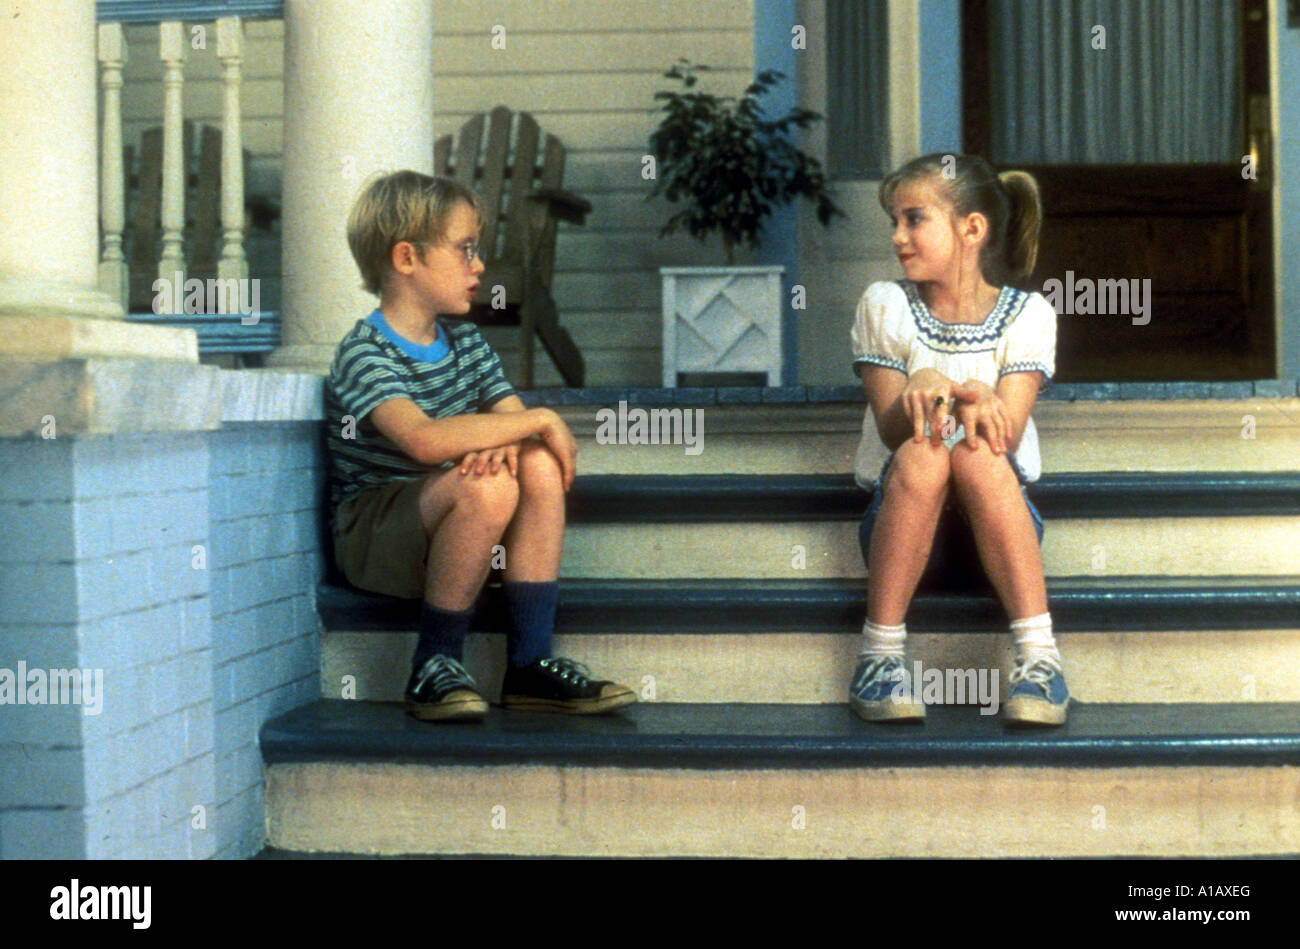 analysis of the film my girl directed by howard zieff My girl is a 1991 american comedy-drama film directed by howard zieff, written by laurice elehwany, starring dan aykroyd, jamie lee curtis, macaulay culkin, and anna chlumsky in her feature debut.